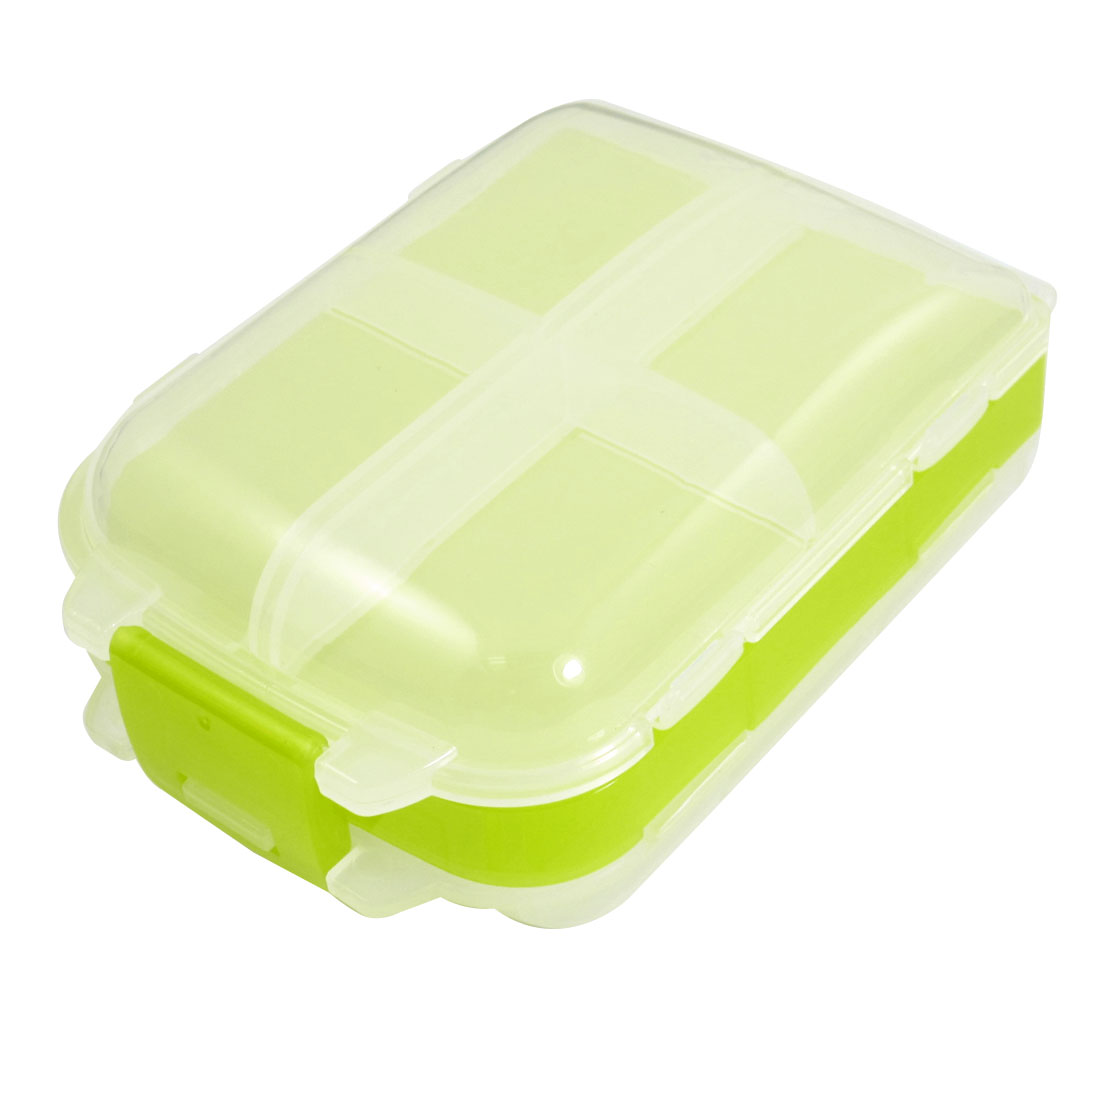 Plastic 8 Compartments Jewelry Electronic Components Case Clear White Green